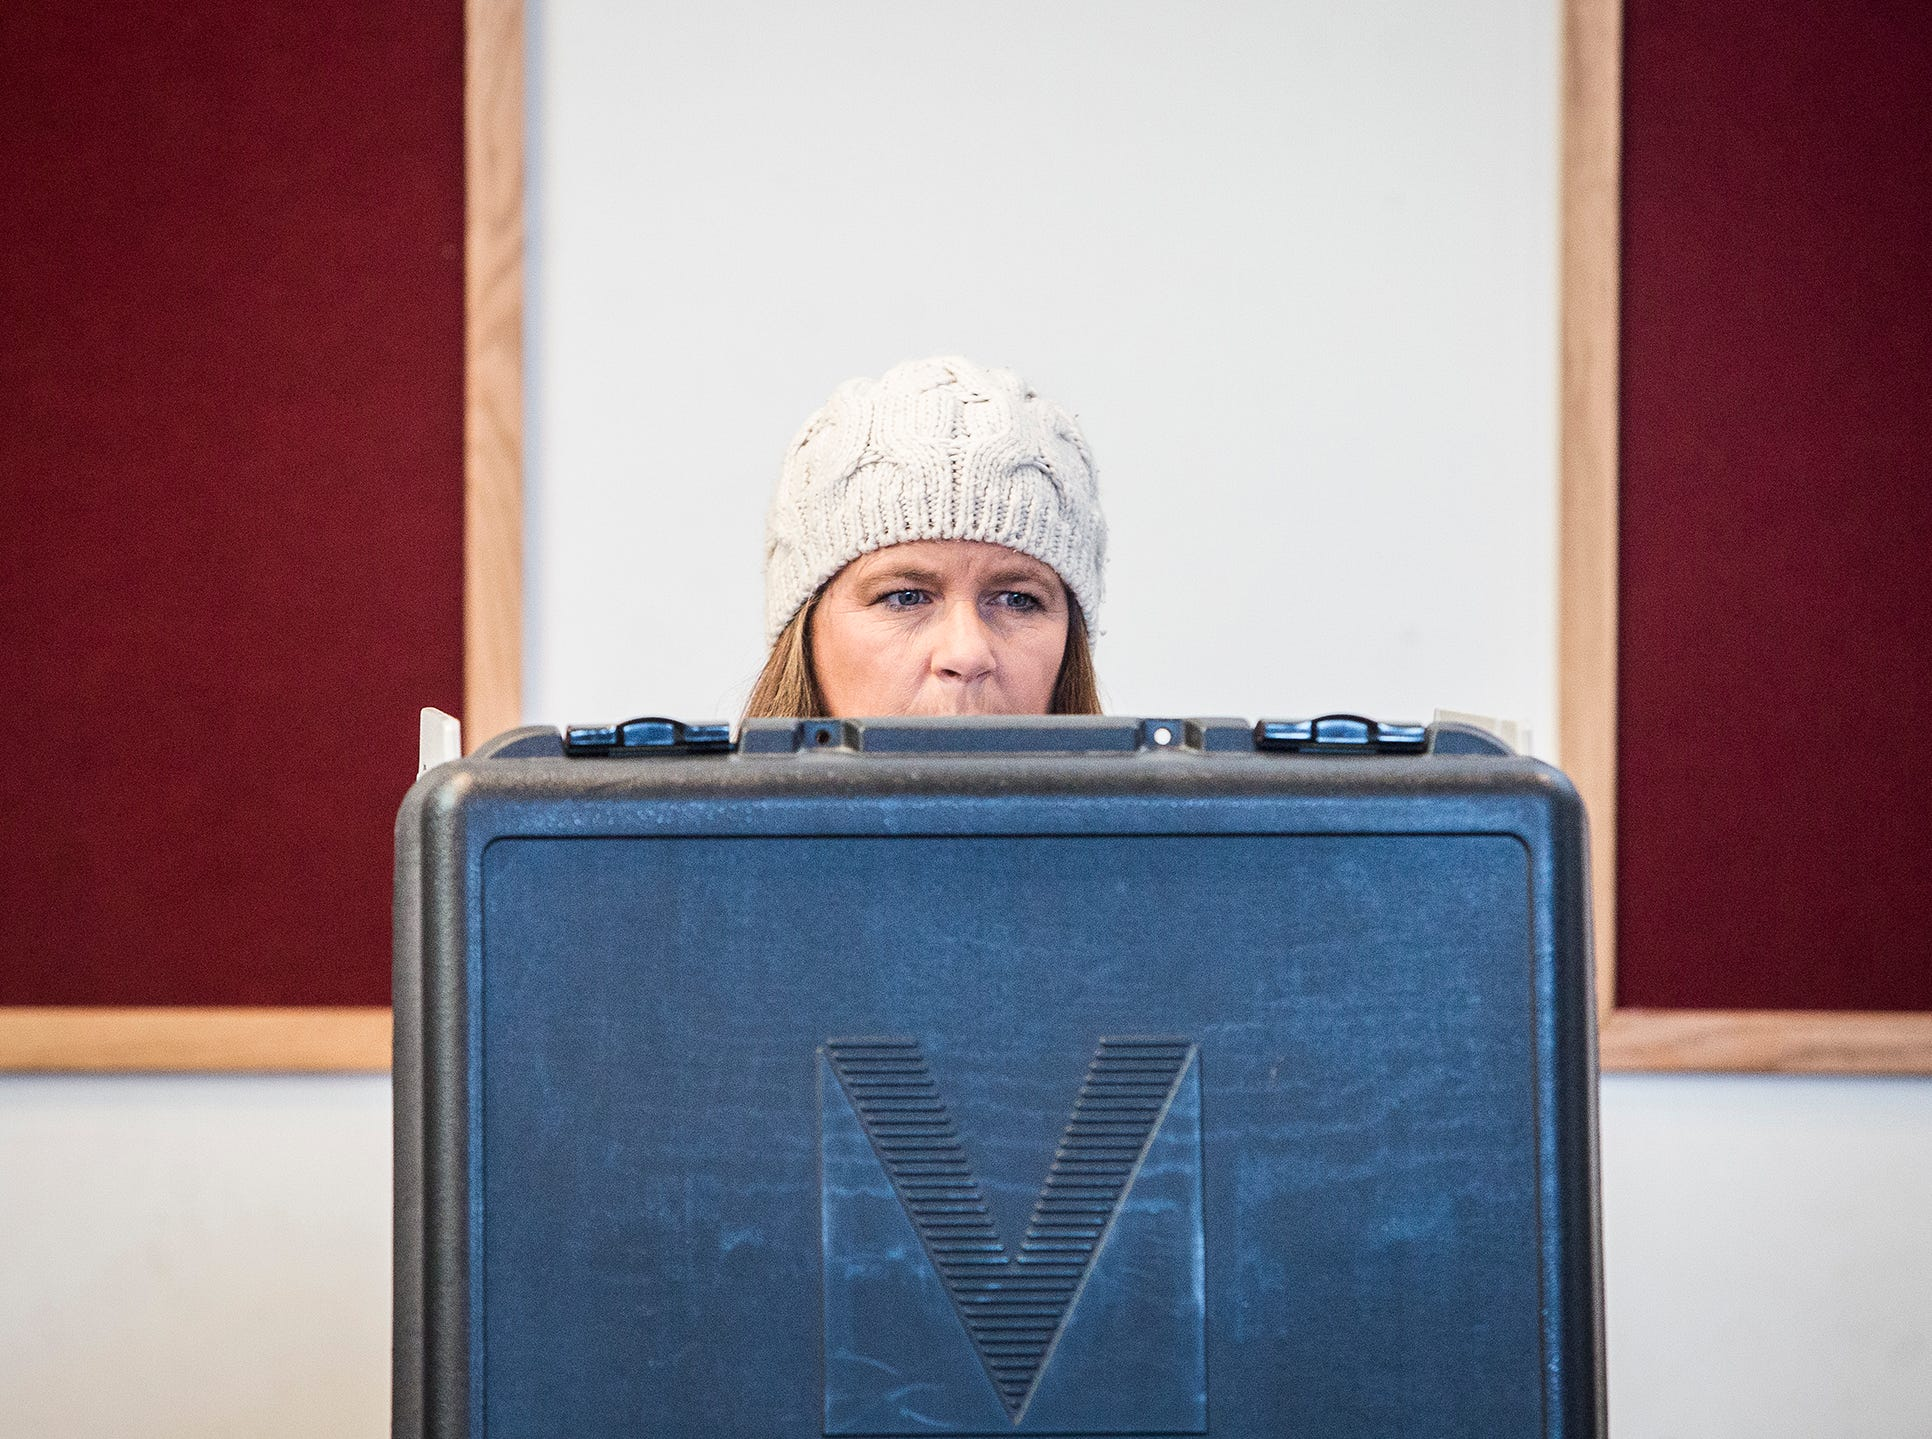 Christa Conway casts her vote at Cornerstone Brethren Church on Cowan Road Tuesday.